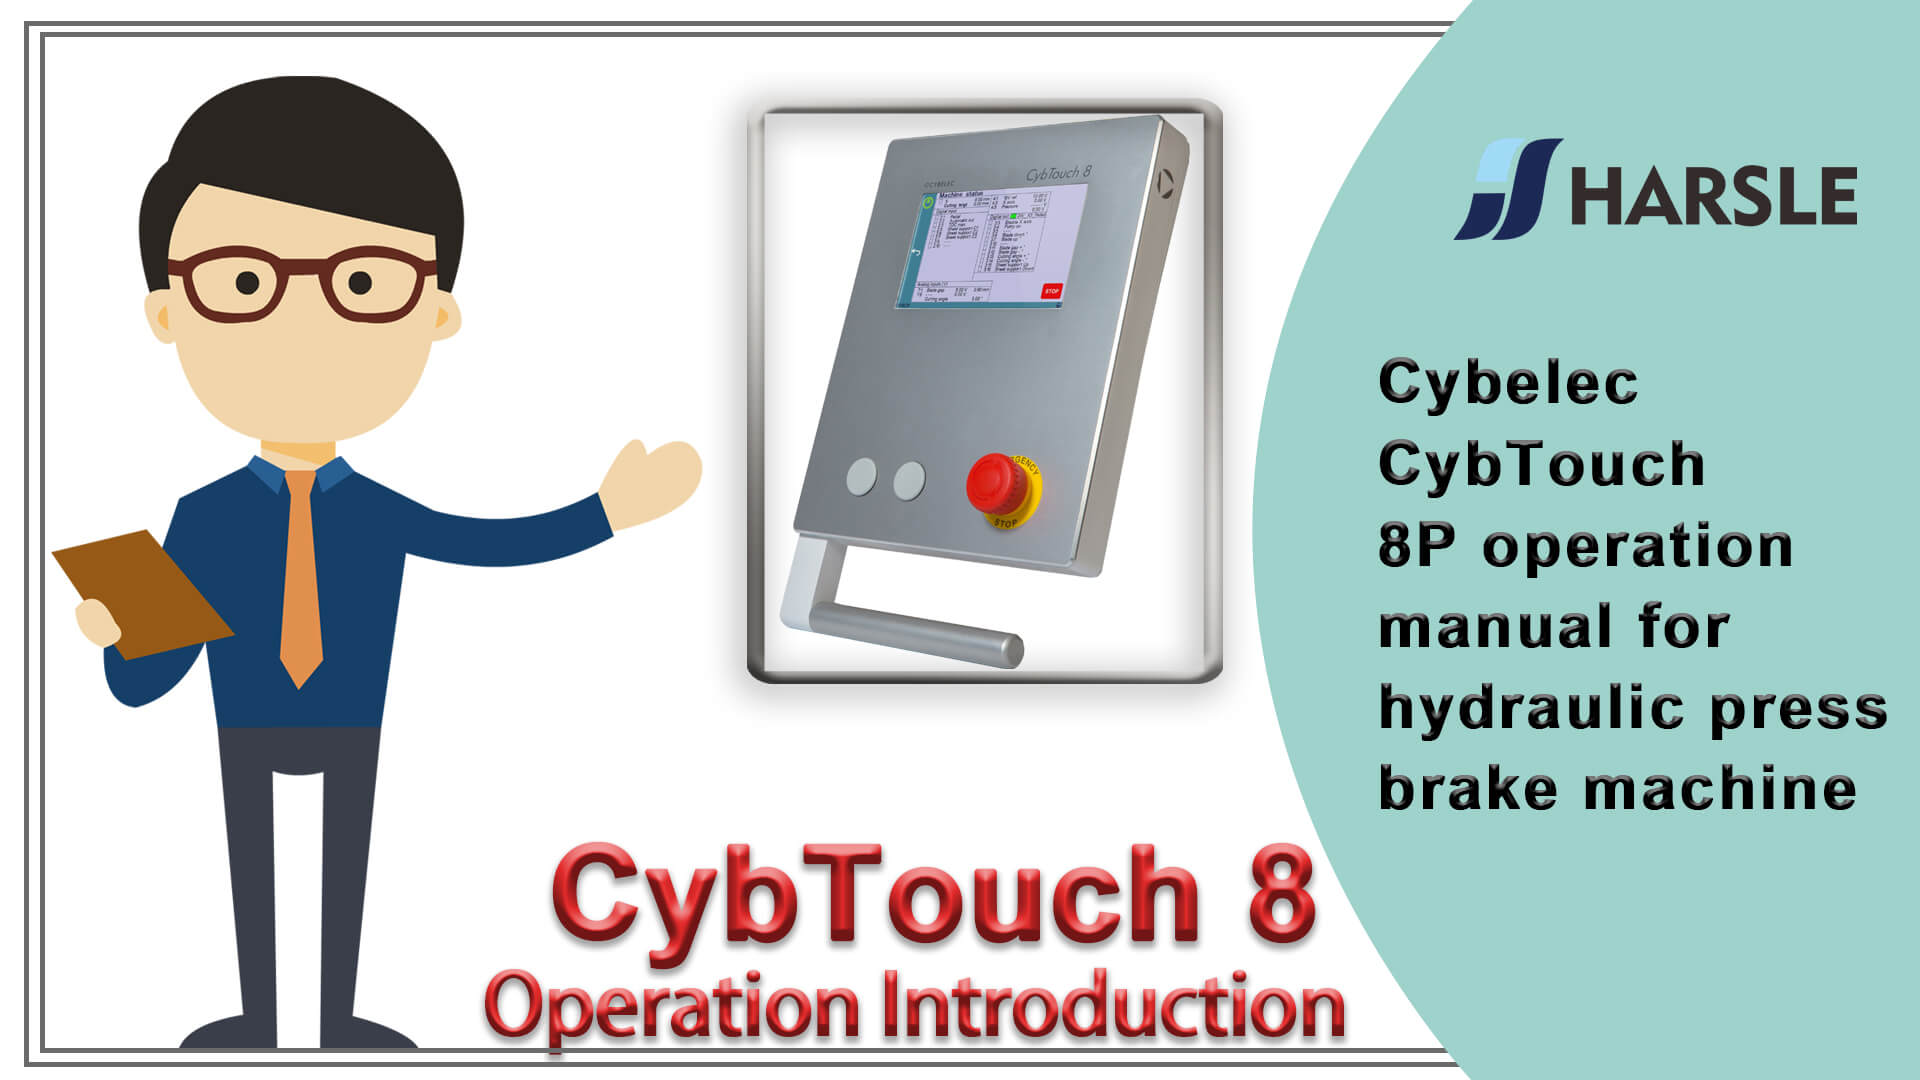 Cybelec CybTouch 8P operation manual for hydraulic press brake machine